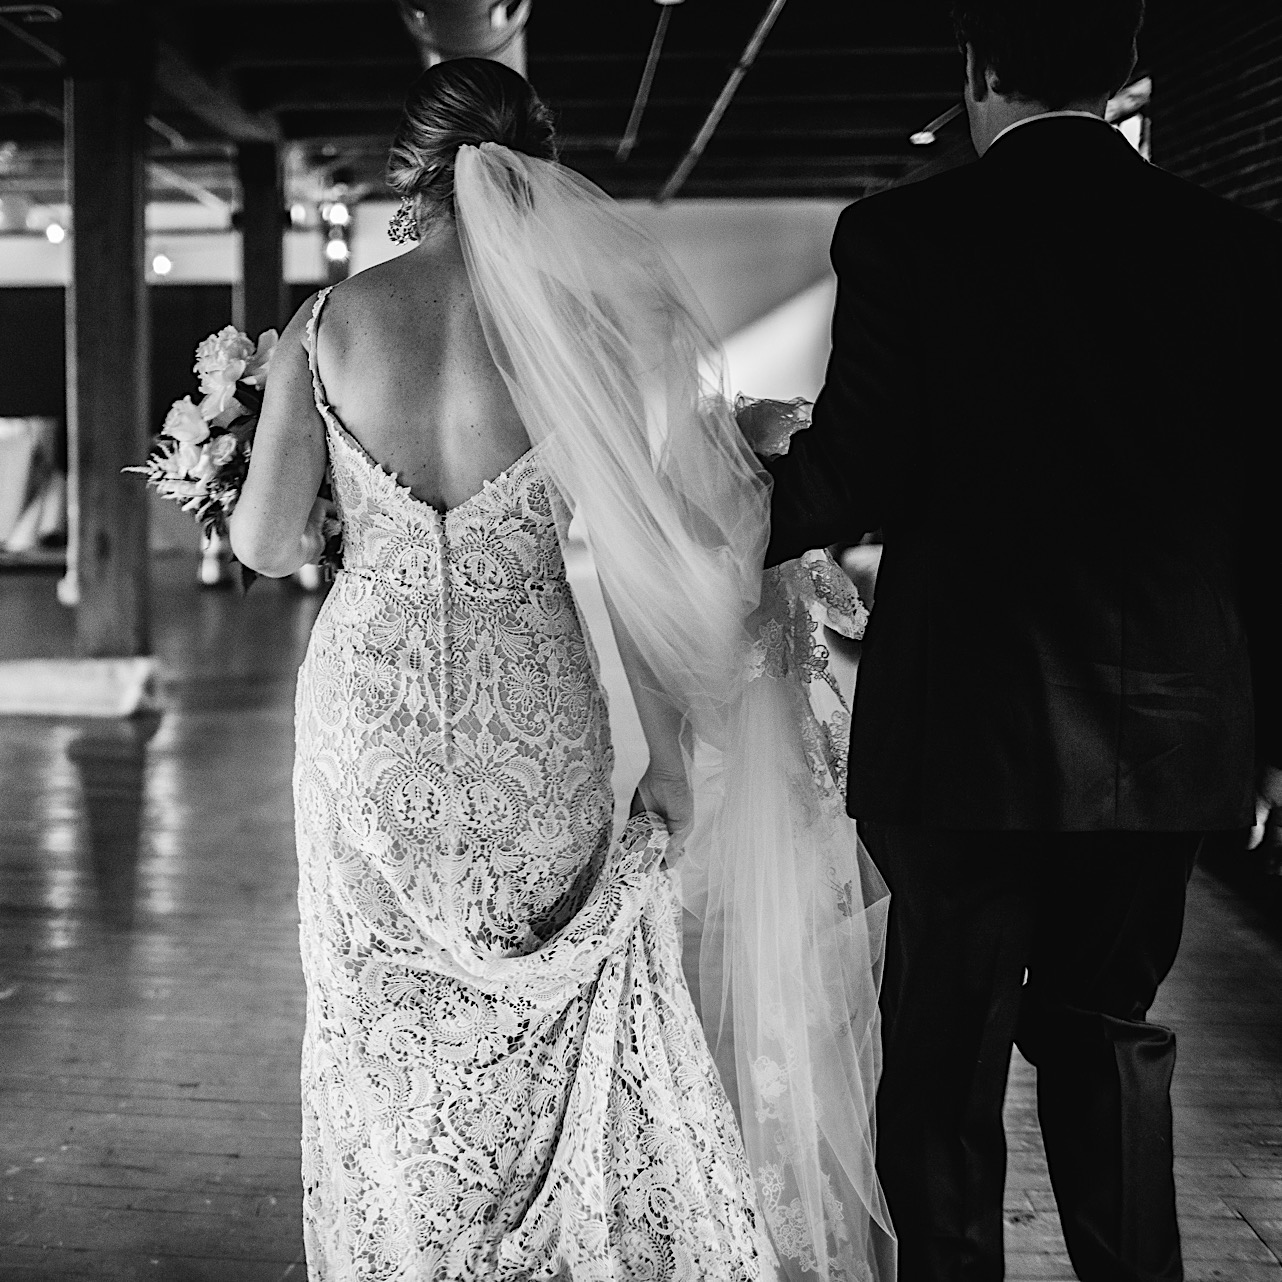 bride carries the train of her low-back lace wedding gown next to groom carrying her long, sheer veil in his hand